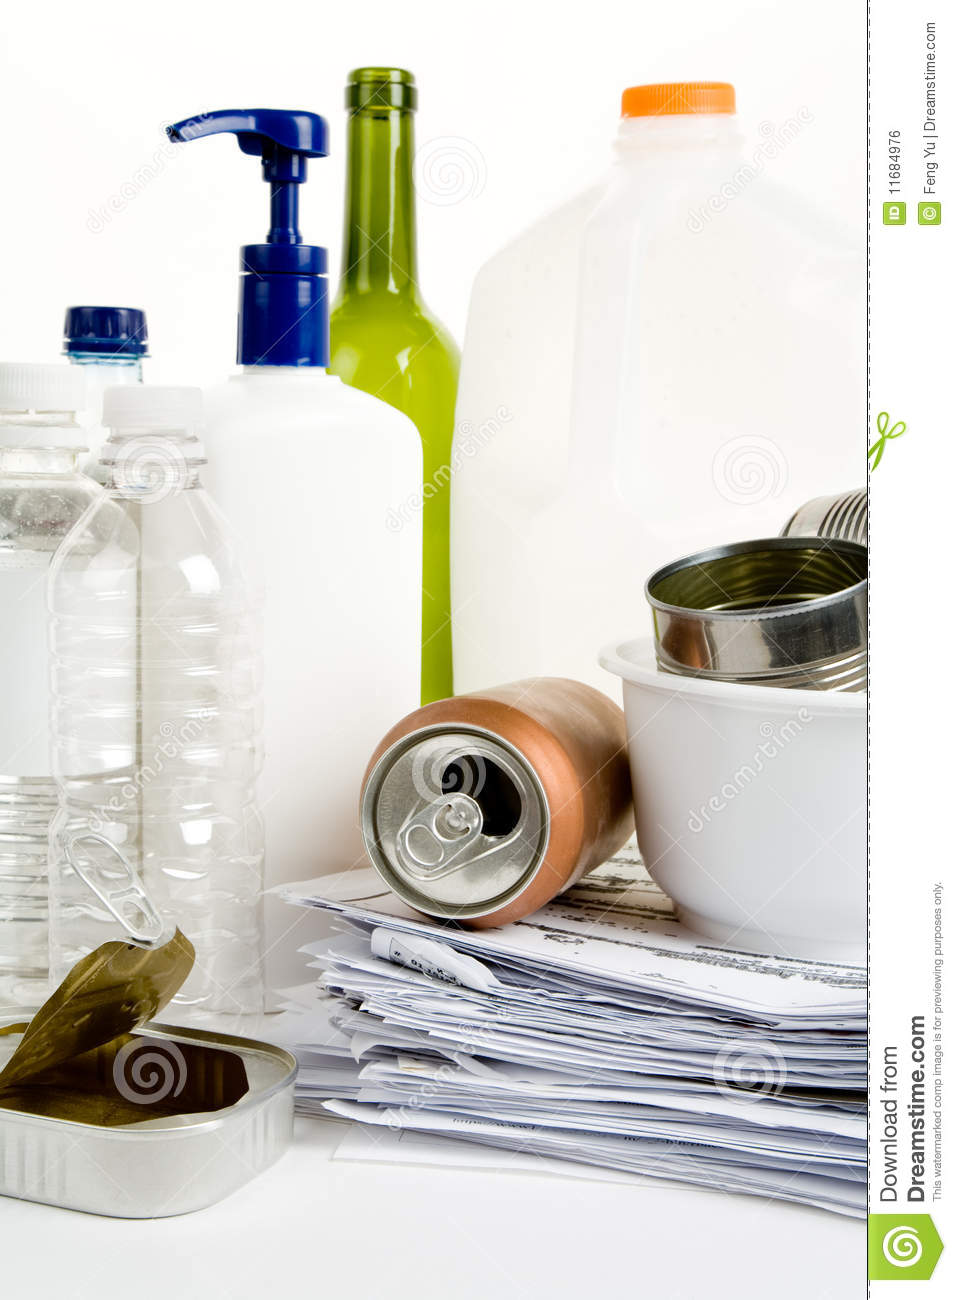 Commercial Recycling Service